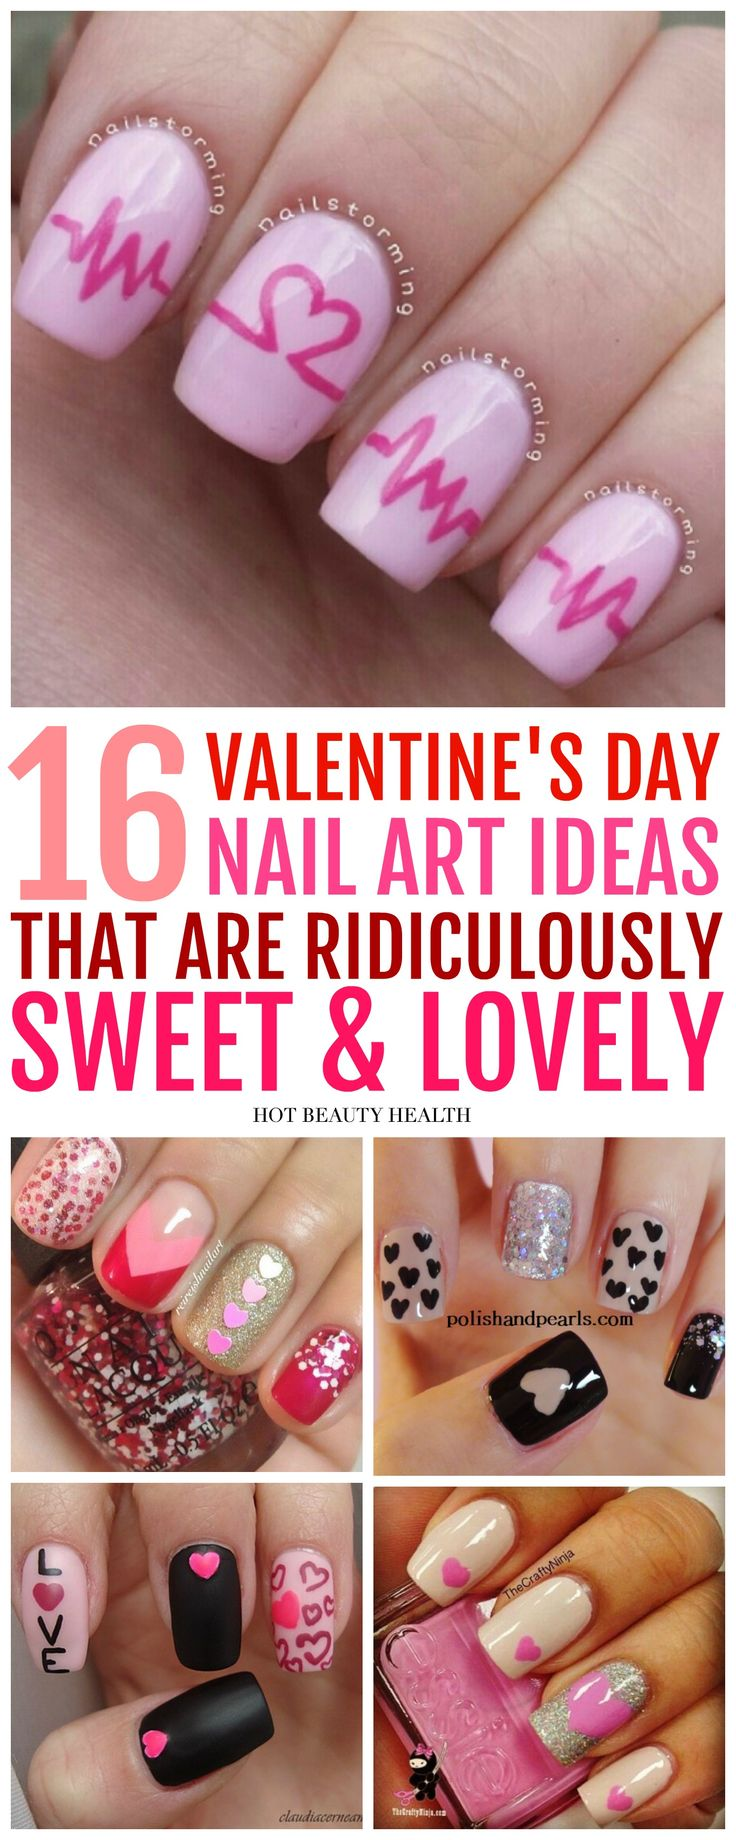 16 easy Valentine's Day nail art ideas that are adorable and fun! Many cute designs with sparkles, stripes, polka dots, valentine heart, and more! Try the traditional red and pink manicures or black & white for something different. Click pin to find a tut